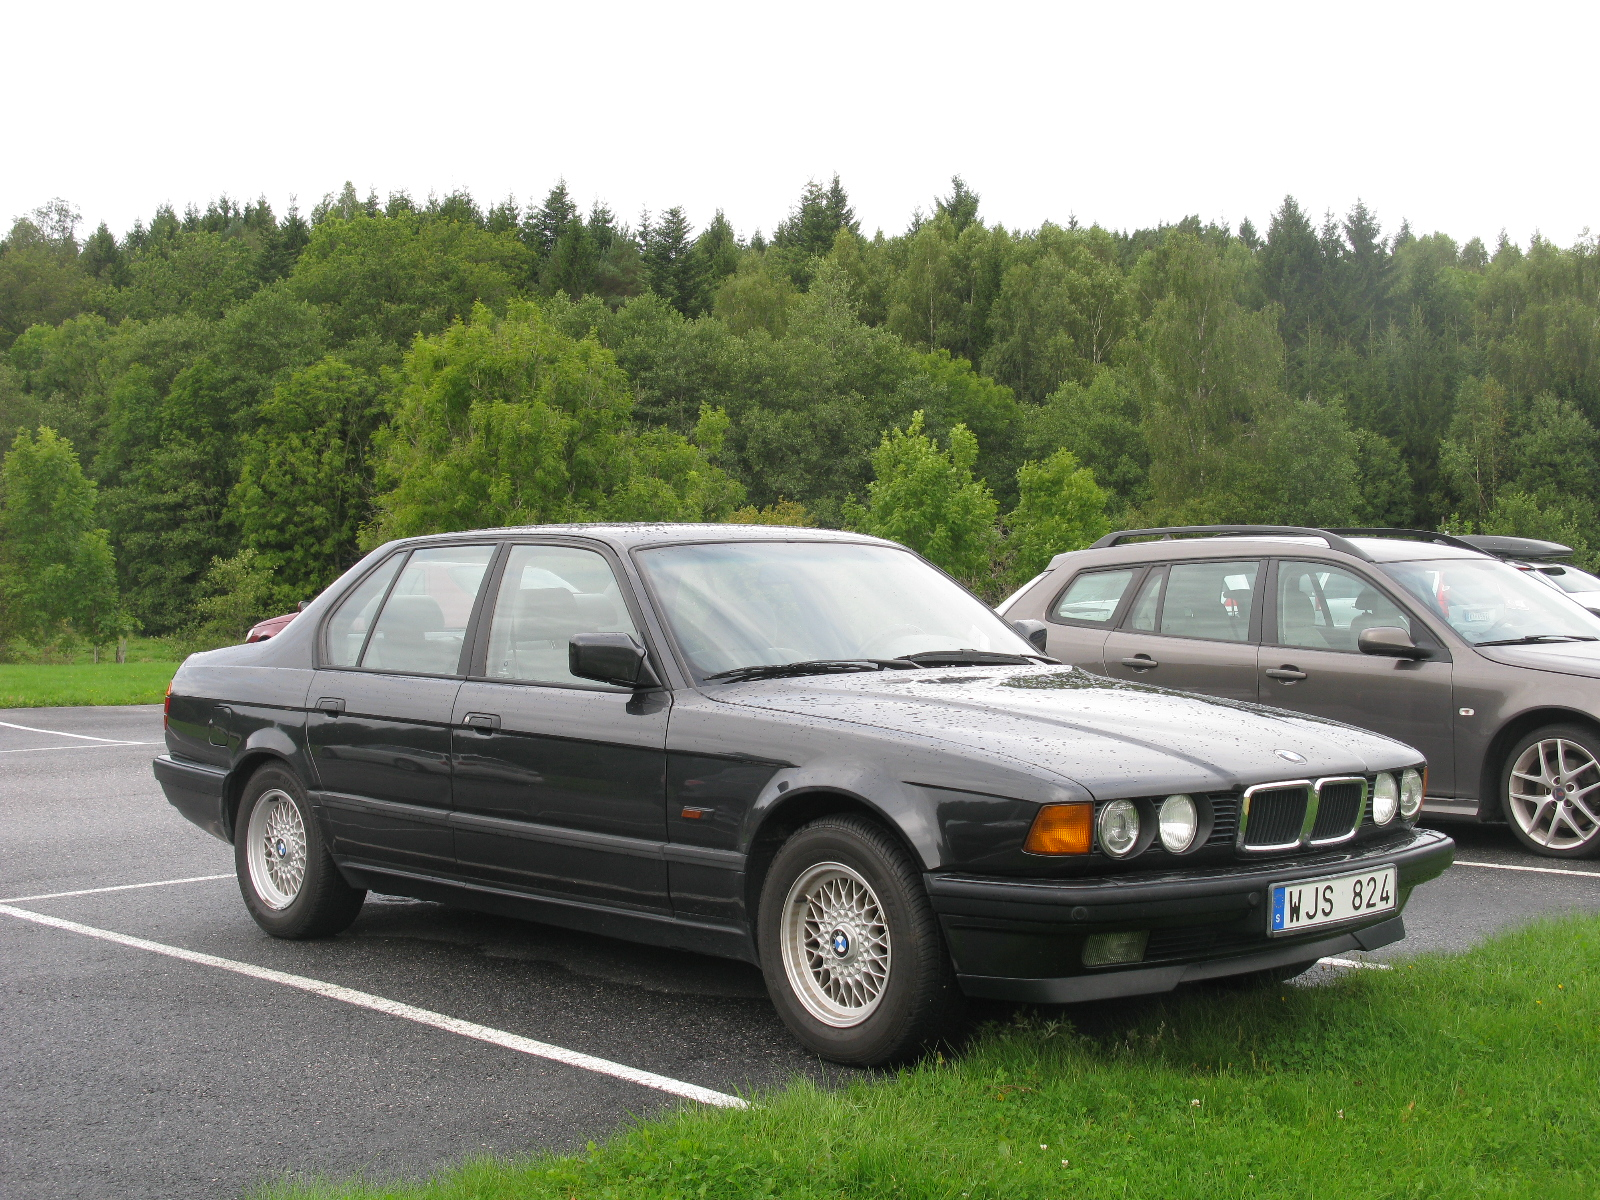 FileBMW I V E Jpg Wikimedia Commons - 730i bmw